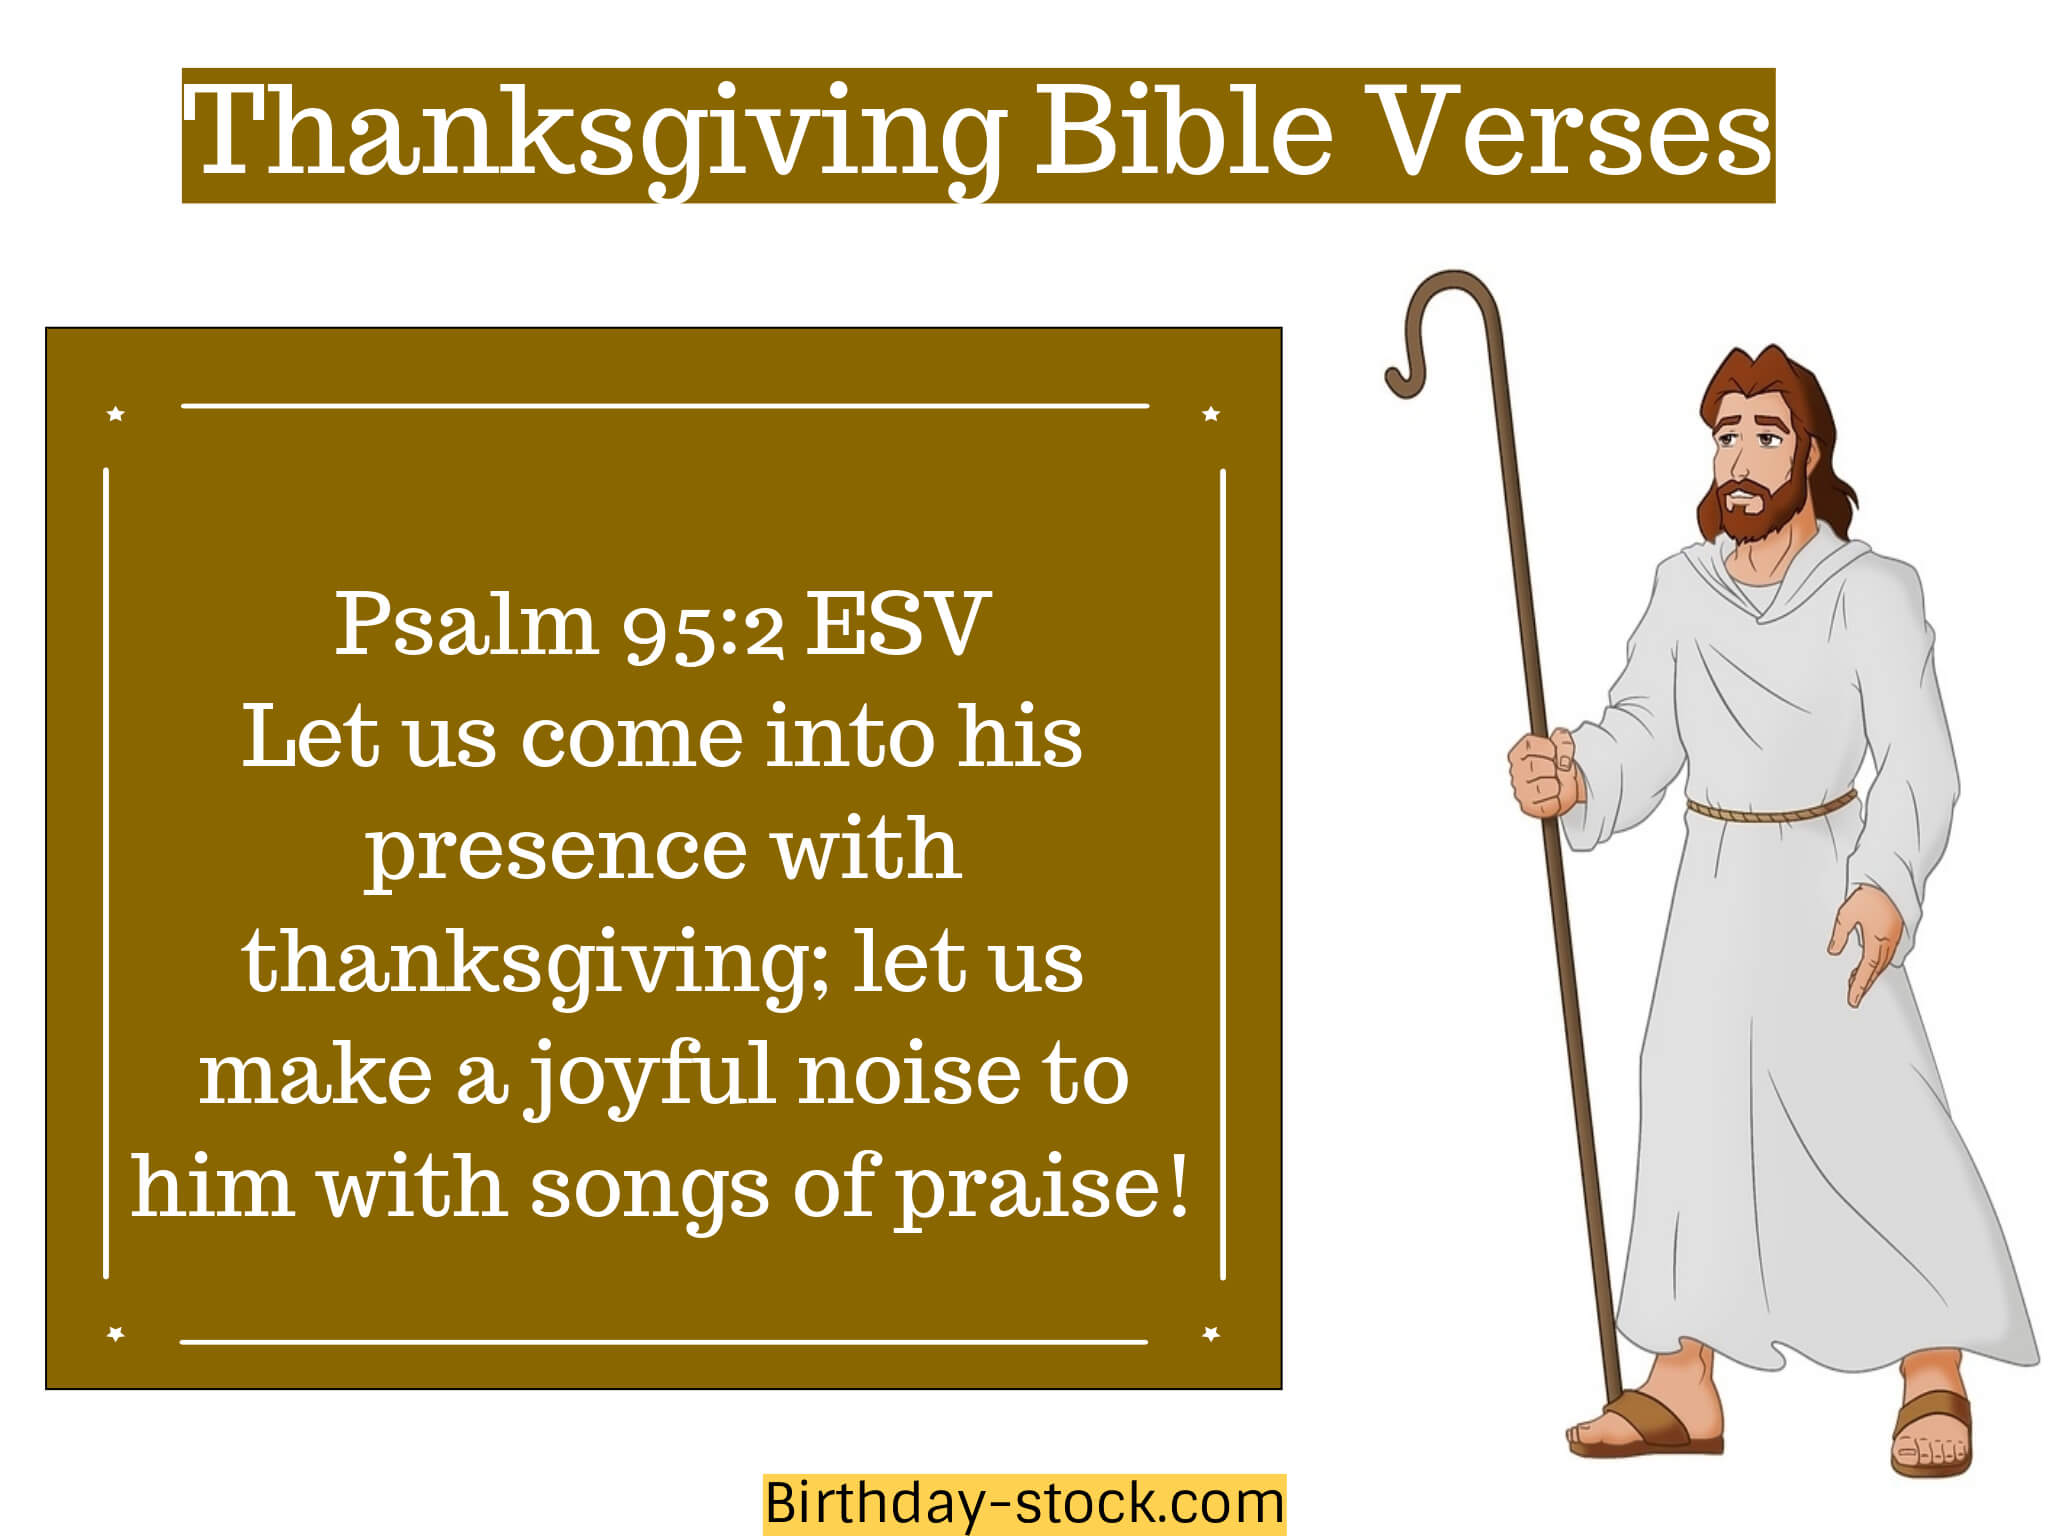 Thanksgiving Bible Verses